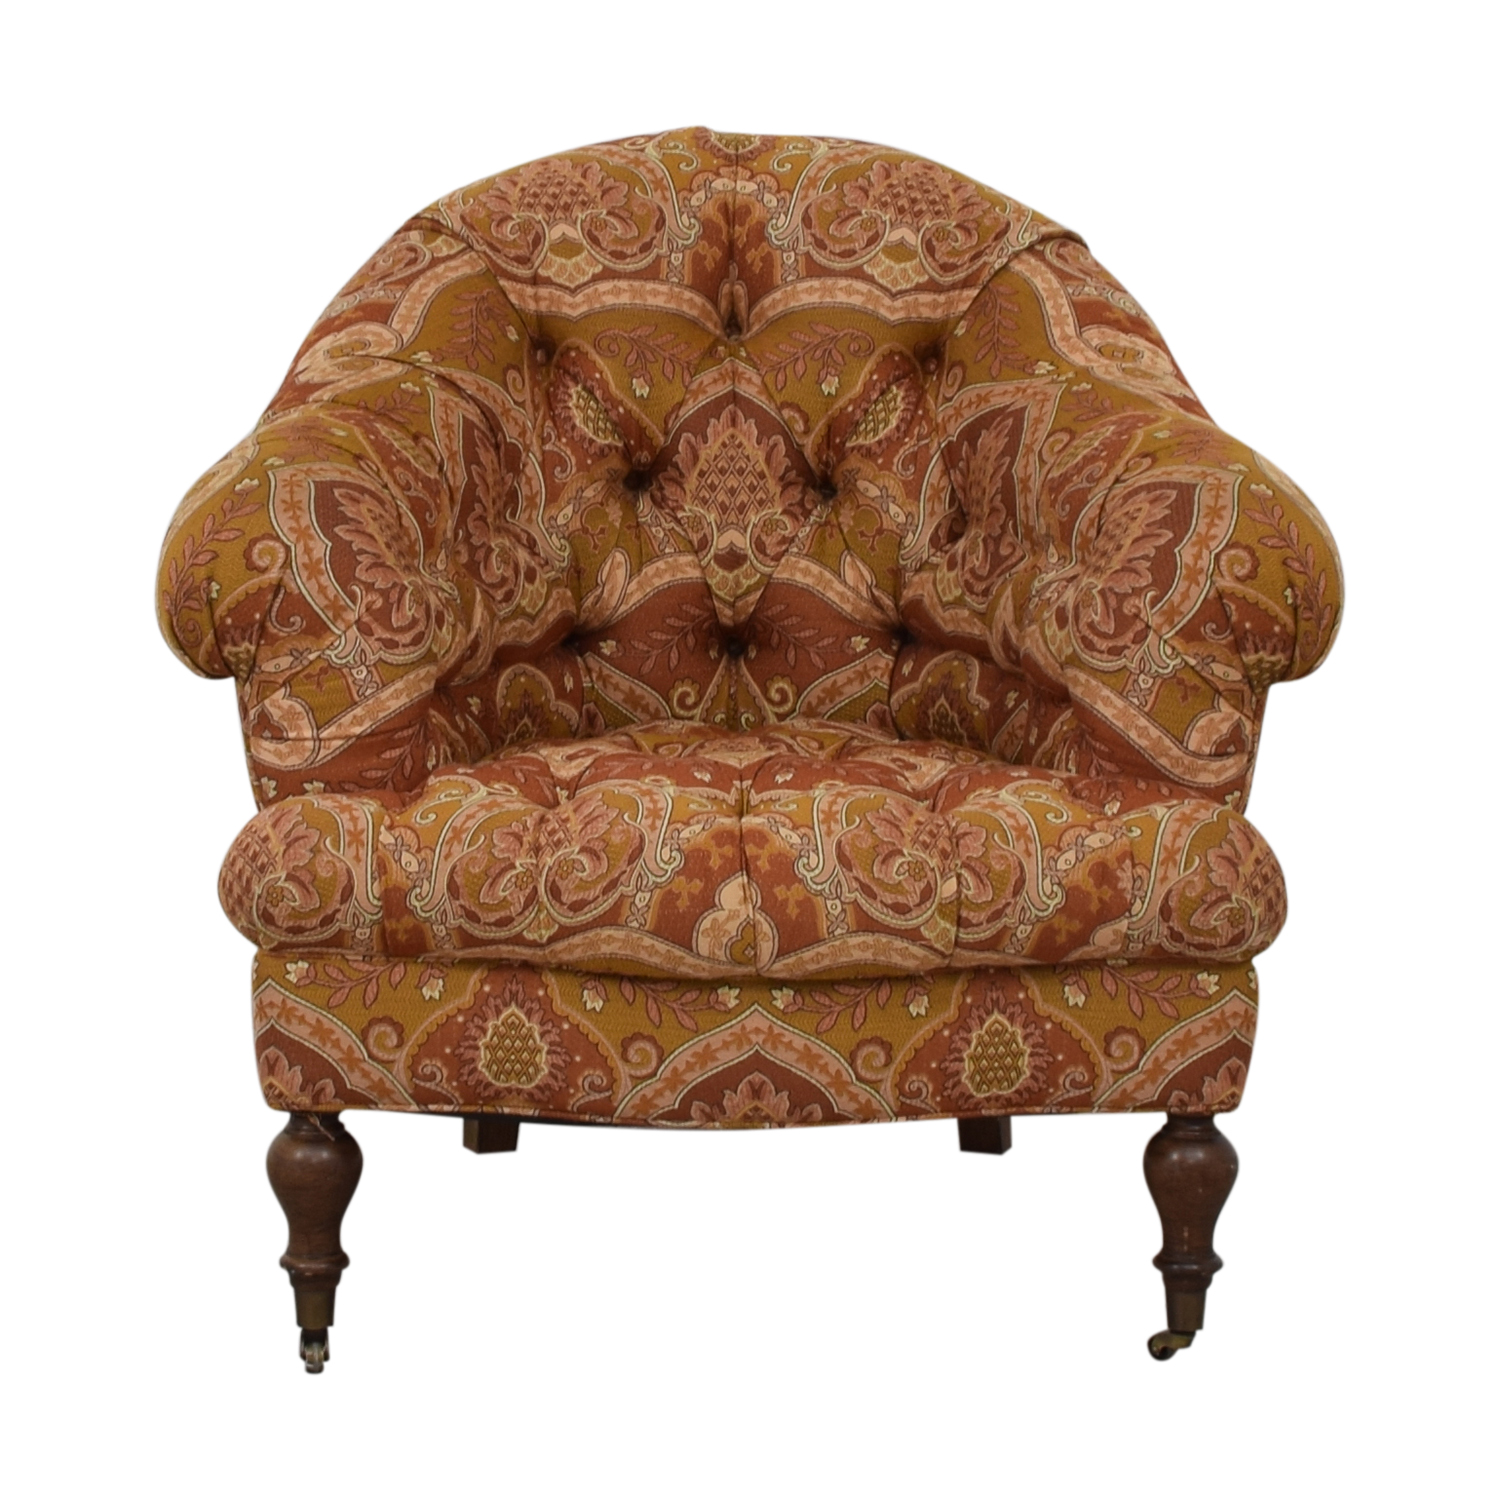 Paisley Chair 65 Off Paisley Floral Upholstered Accent Chair With Castors Chairs